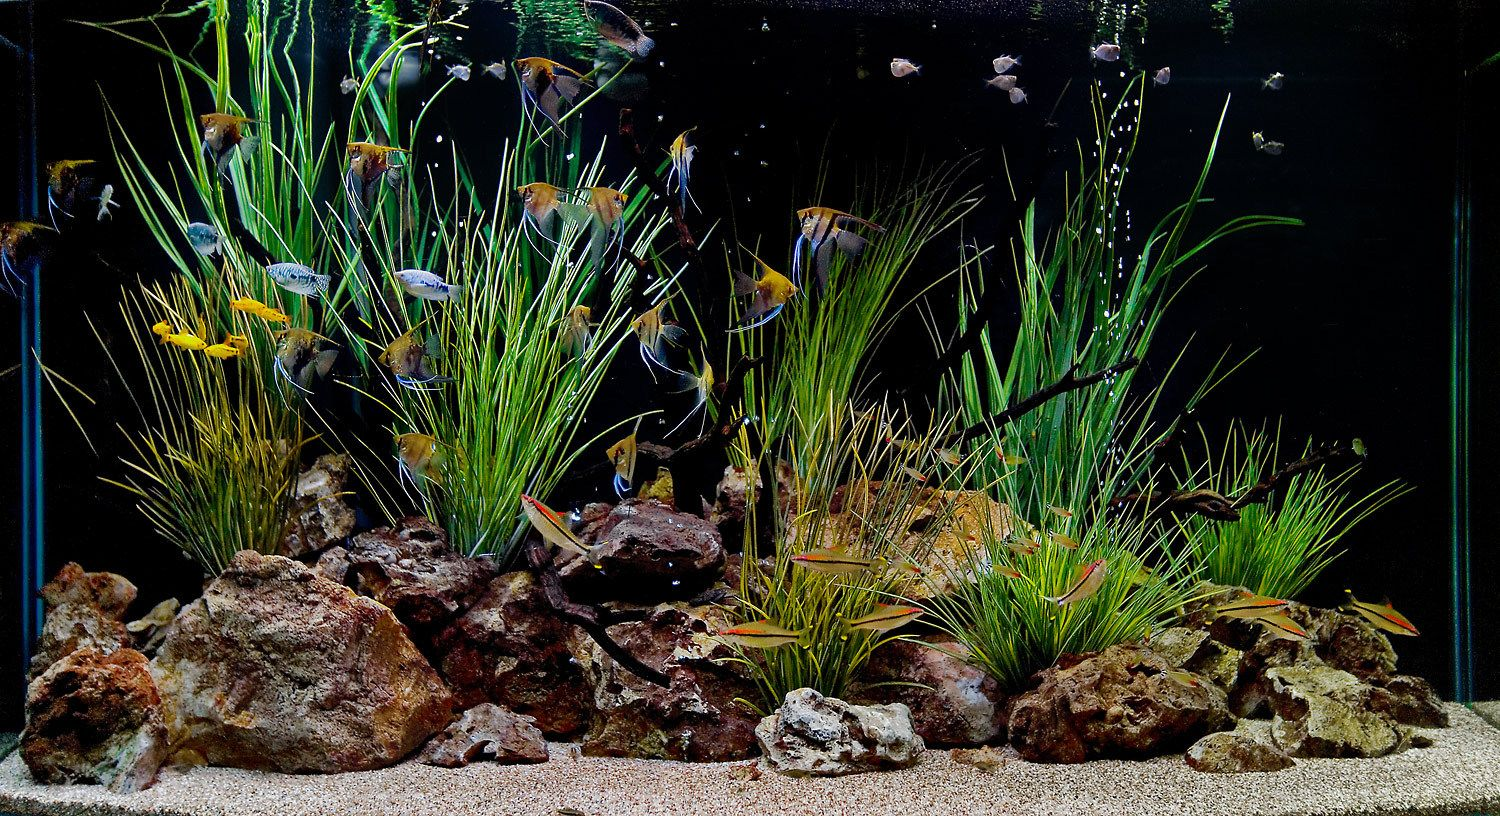 Freshwater fish for aquarium in india - Freshwater Aquarium Design Ideas Aquarium Design Group Custom Aquarium Design Installation And Service